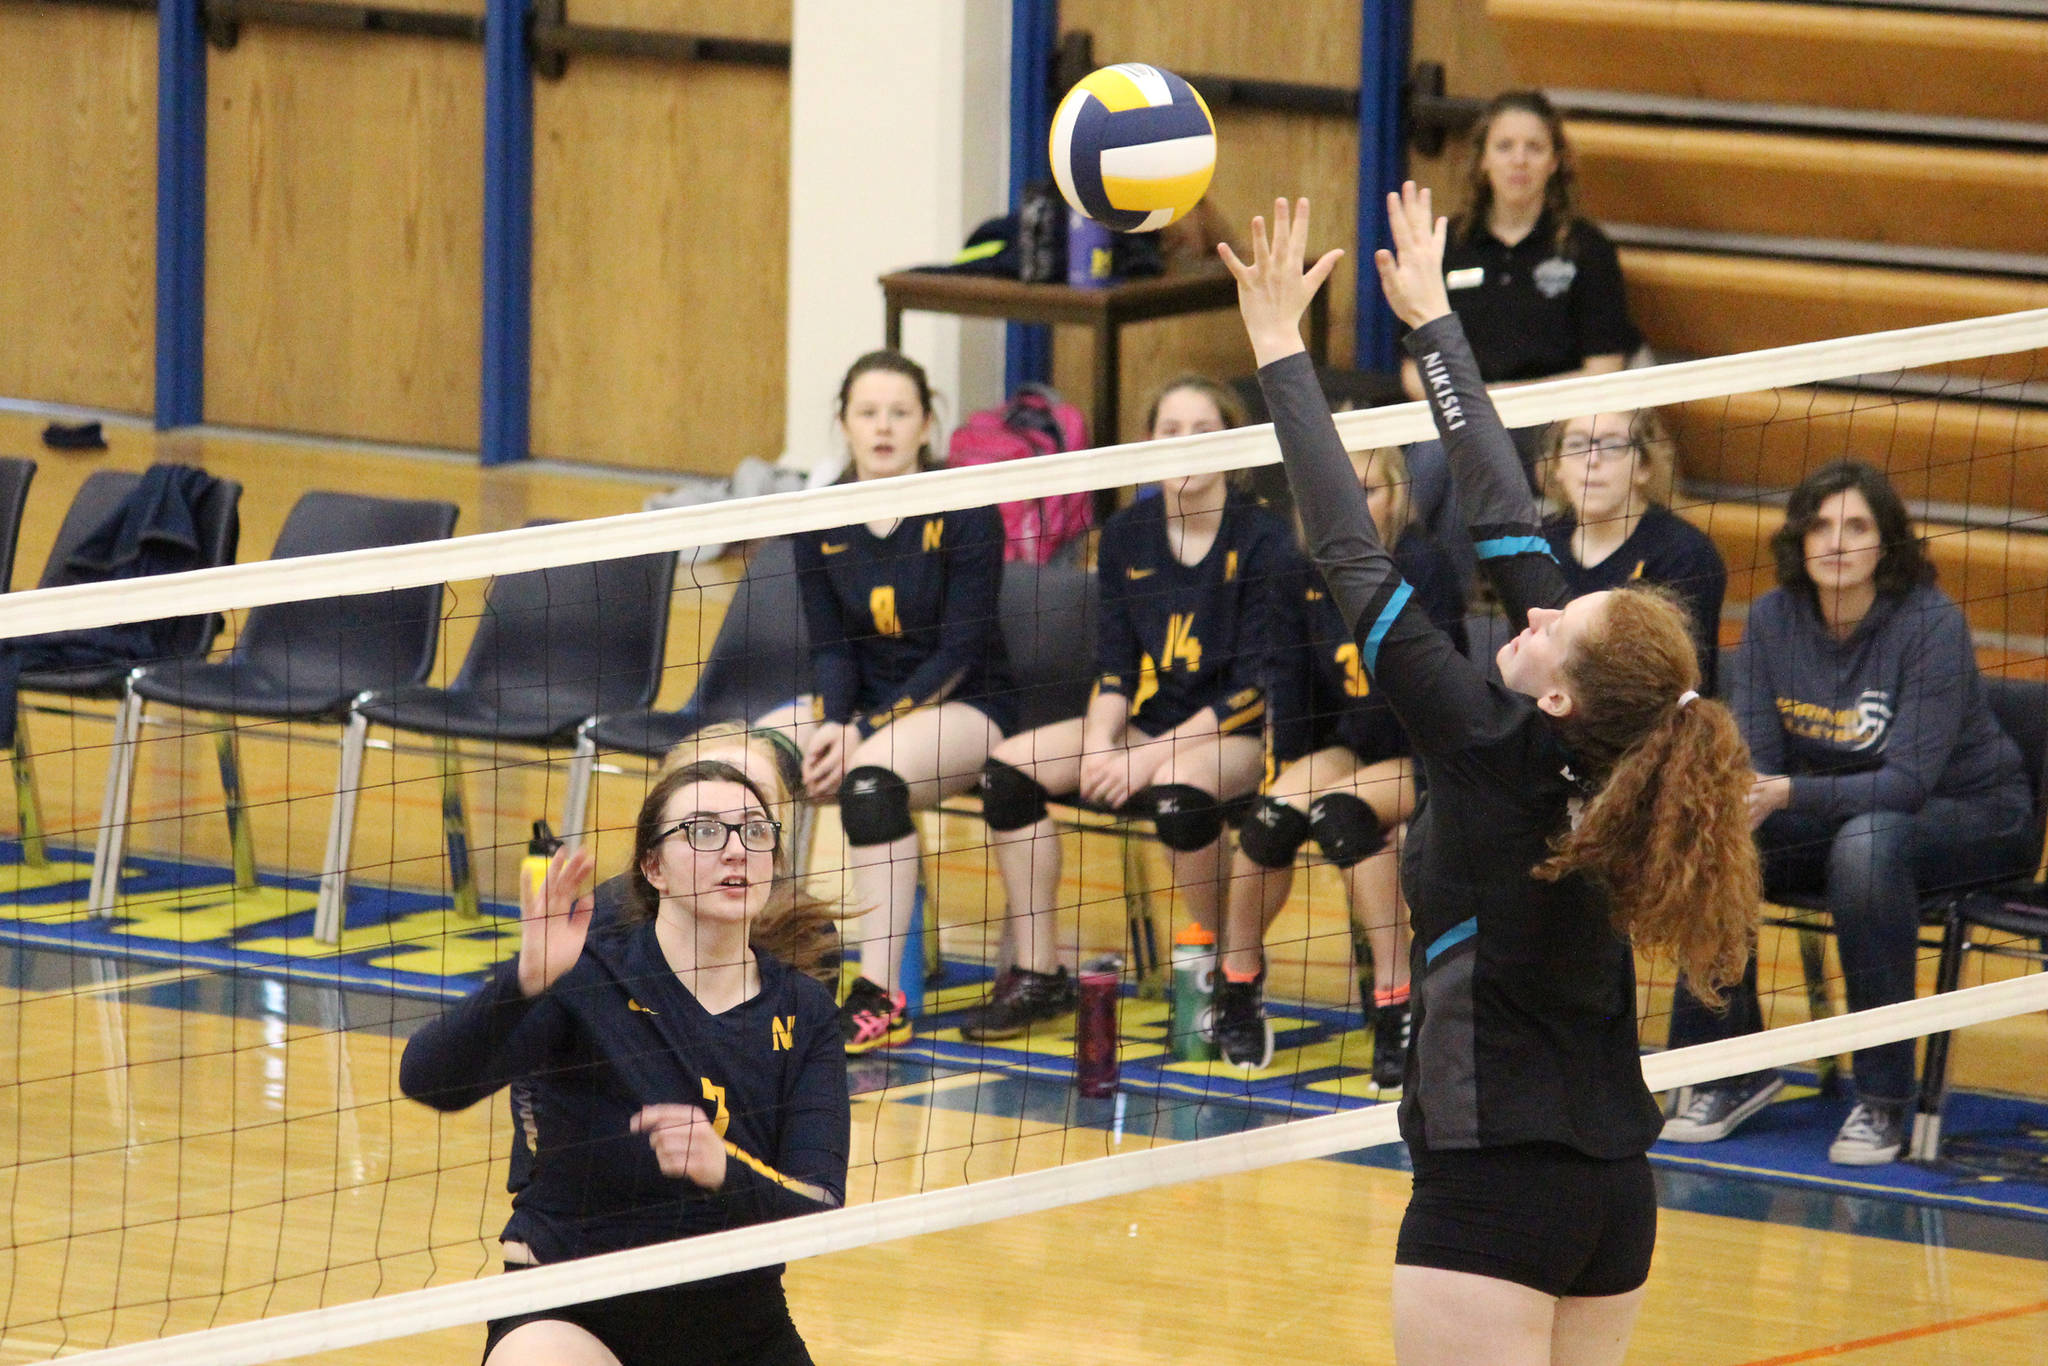 Nikiski's Kaycee Bostic jumps to block a hit from Homer's Tonda Smude during their game Saturday, Oct. 13, 2018 at the Alice Witte Gymnasium in Homer, Alaska. (Photo by Megan Pacer/Homer News)